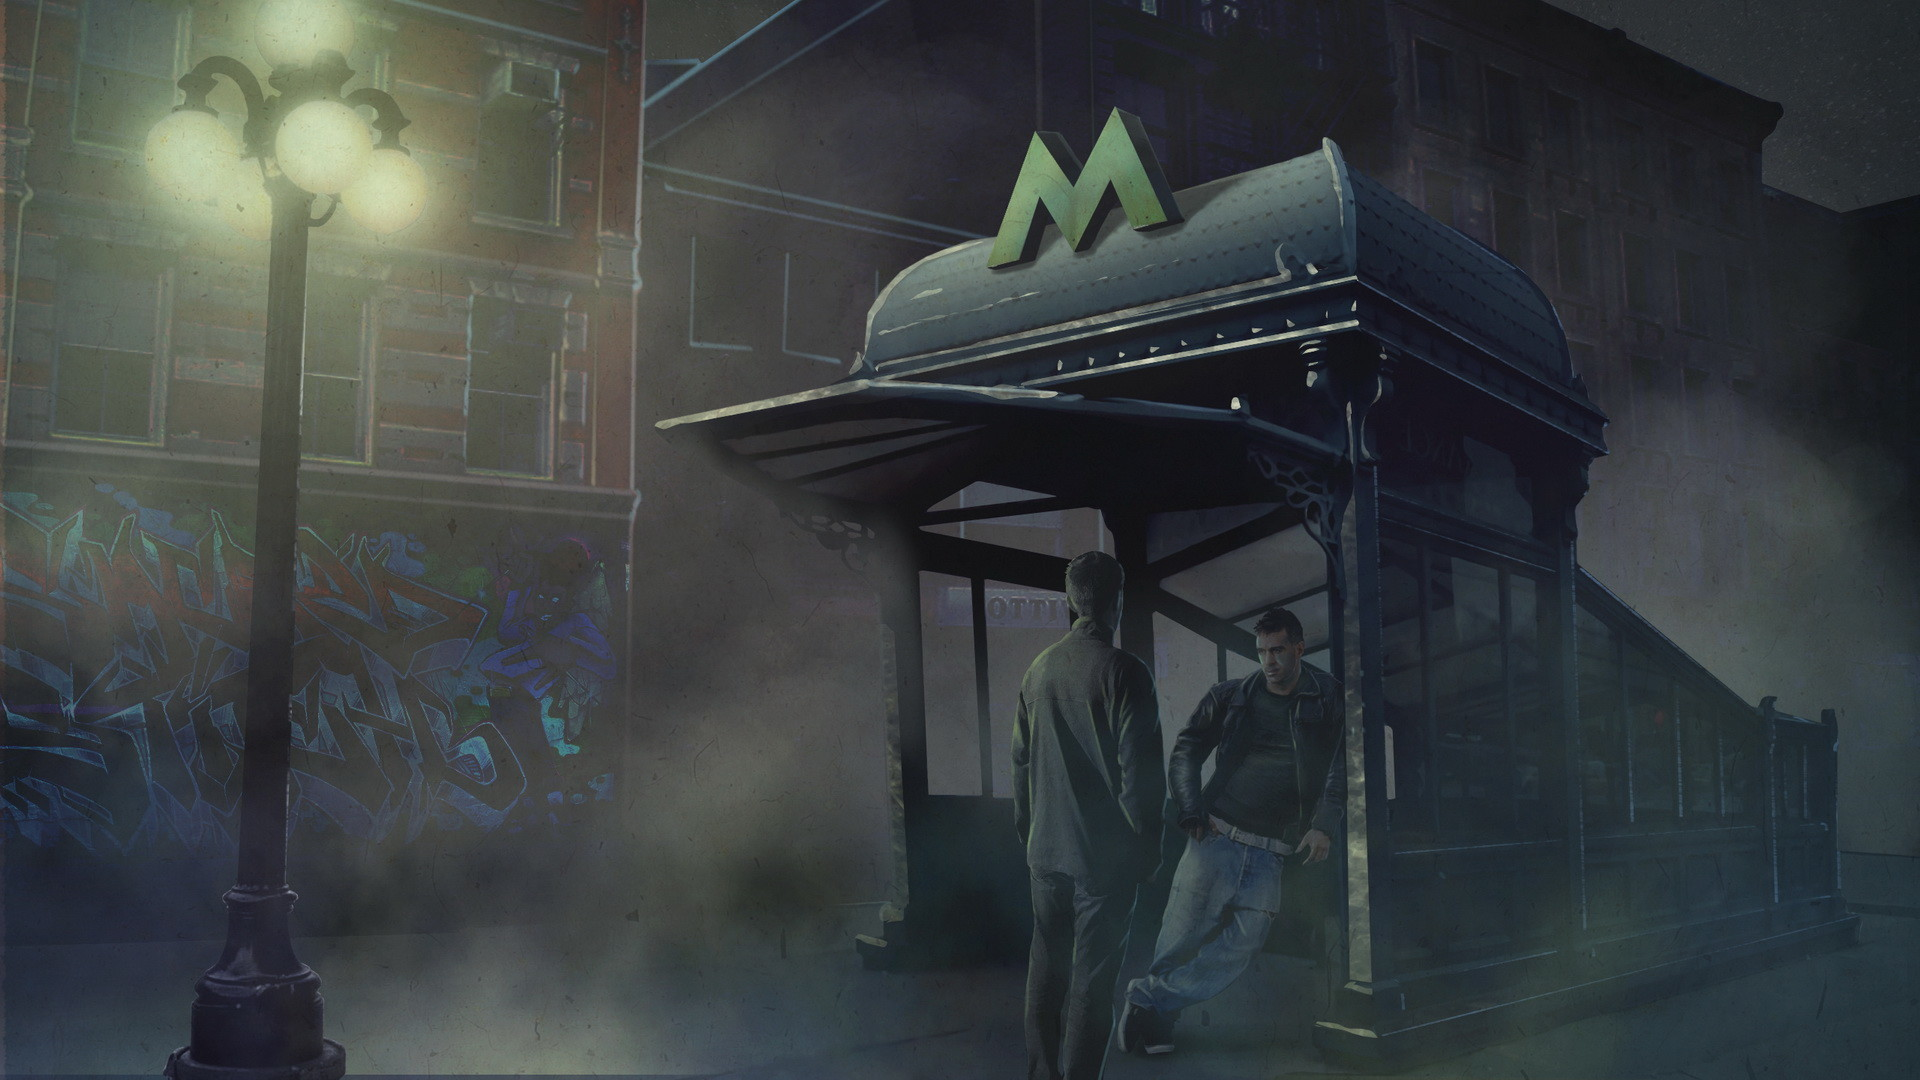 Scene 2 - Subway entrance